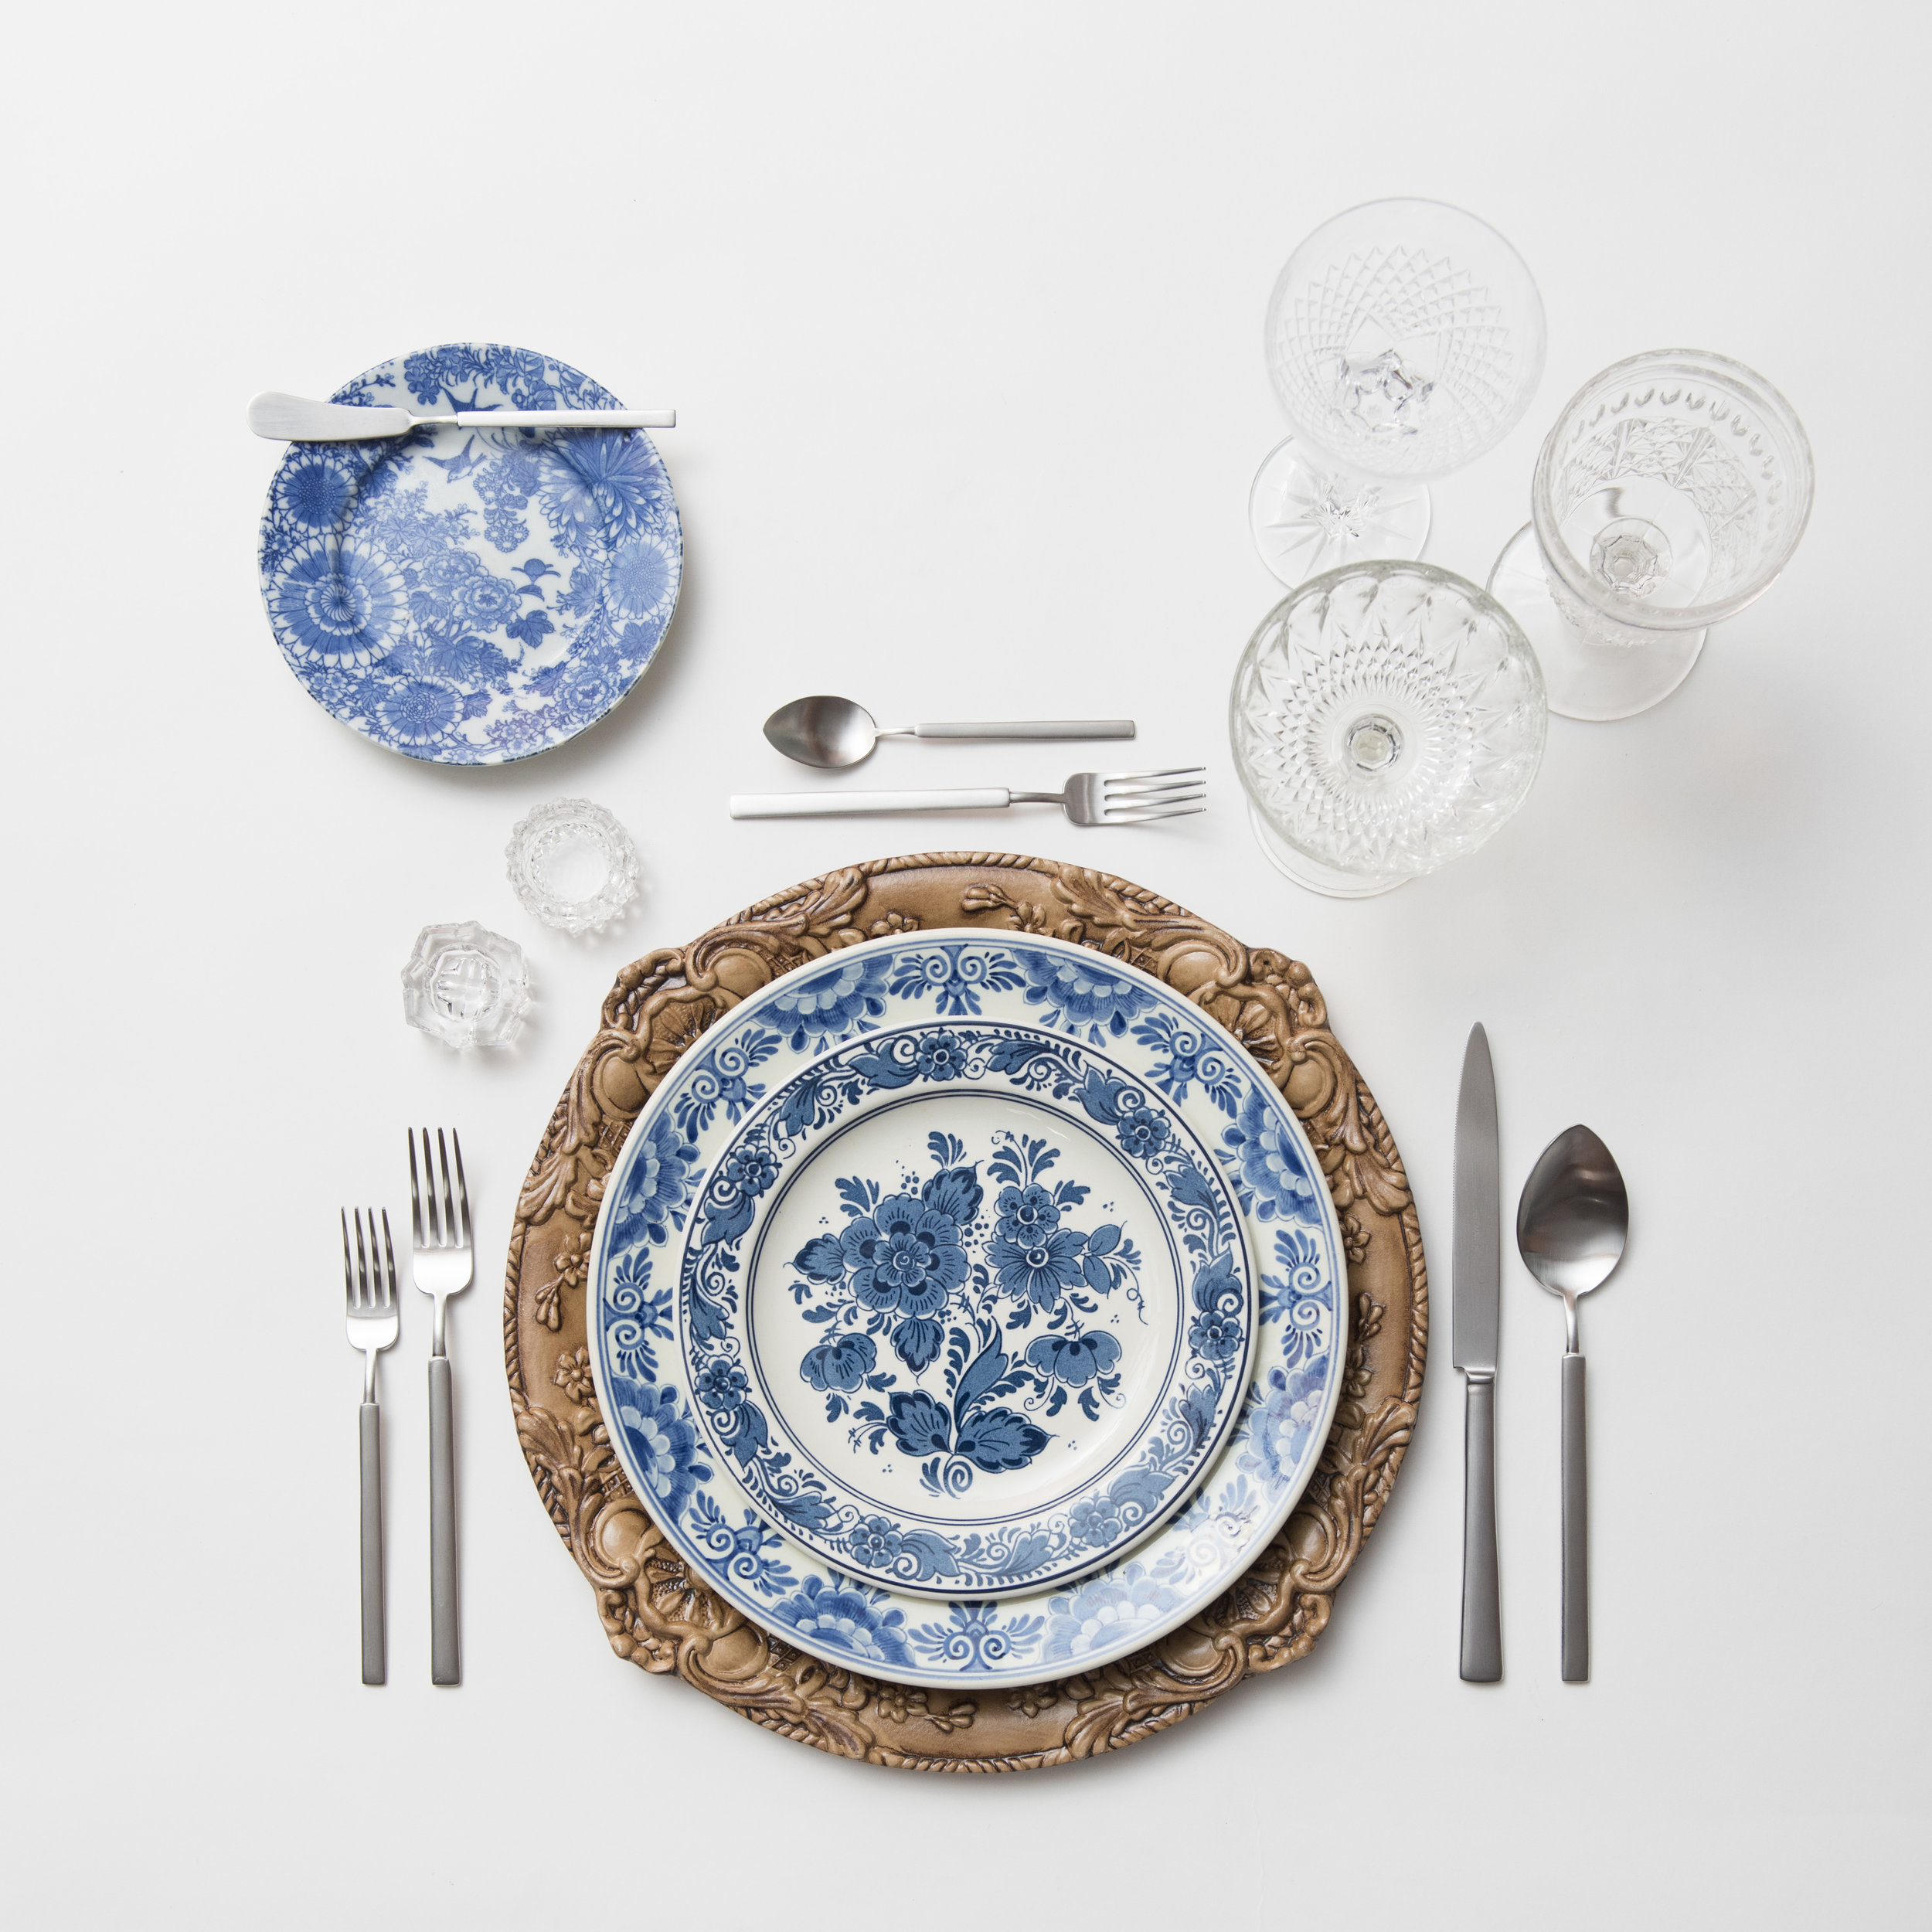 RENT: Verona Chargers in Walnut + Blue Garden Collection Vintage China + Axel Flatware in Matte Silver + Vintage Cut Crystal Goblets + Early American Pressed Glass Goblets + Vintage Champagne Coupes + Antique Crystal Salt Cellars  SHOP:Verona Chargers in Walnut